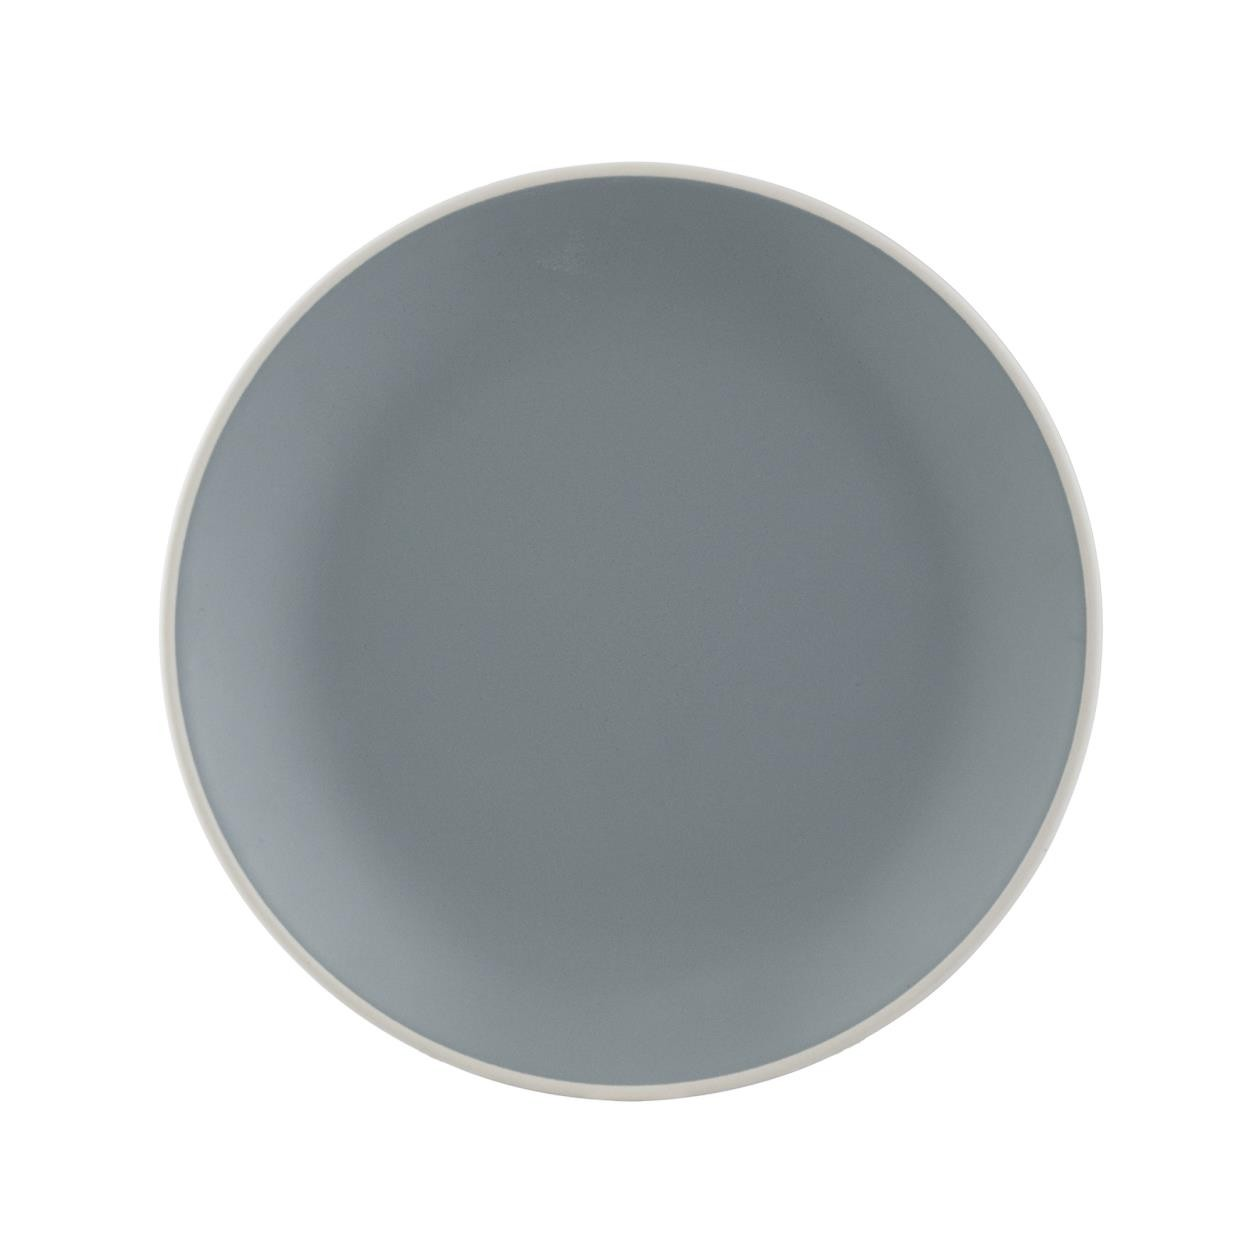 CLASSIC COLLECTION GREY DINNER PLATE